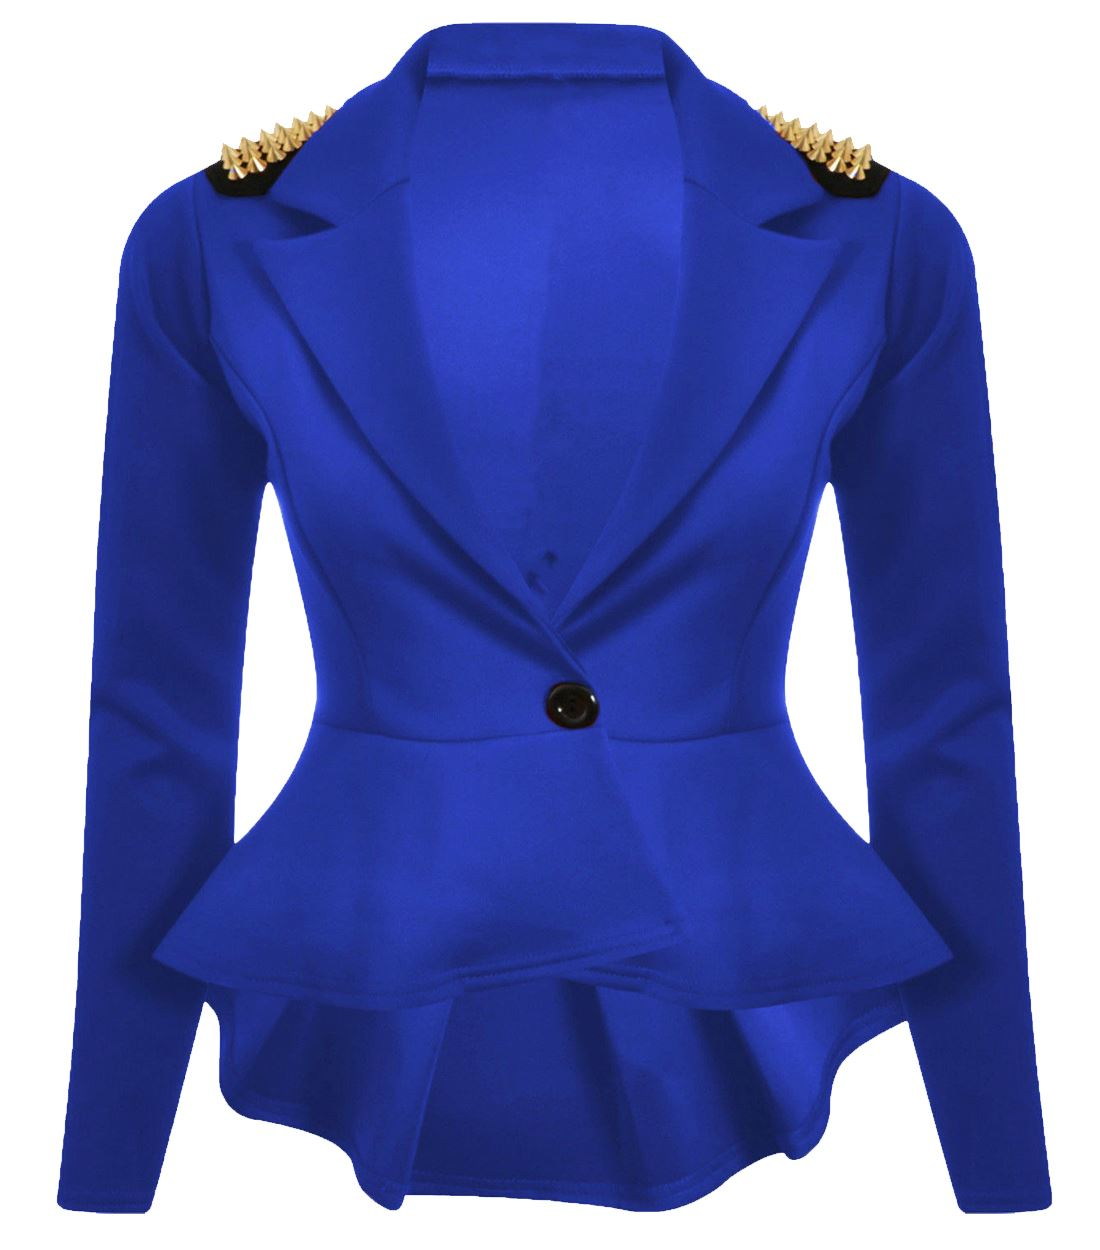 New Ladies Skater Peplum Frill Studs Blazer Slim Fit Shift Jackets 8-24